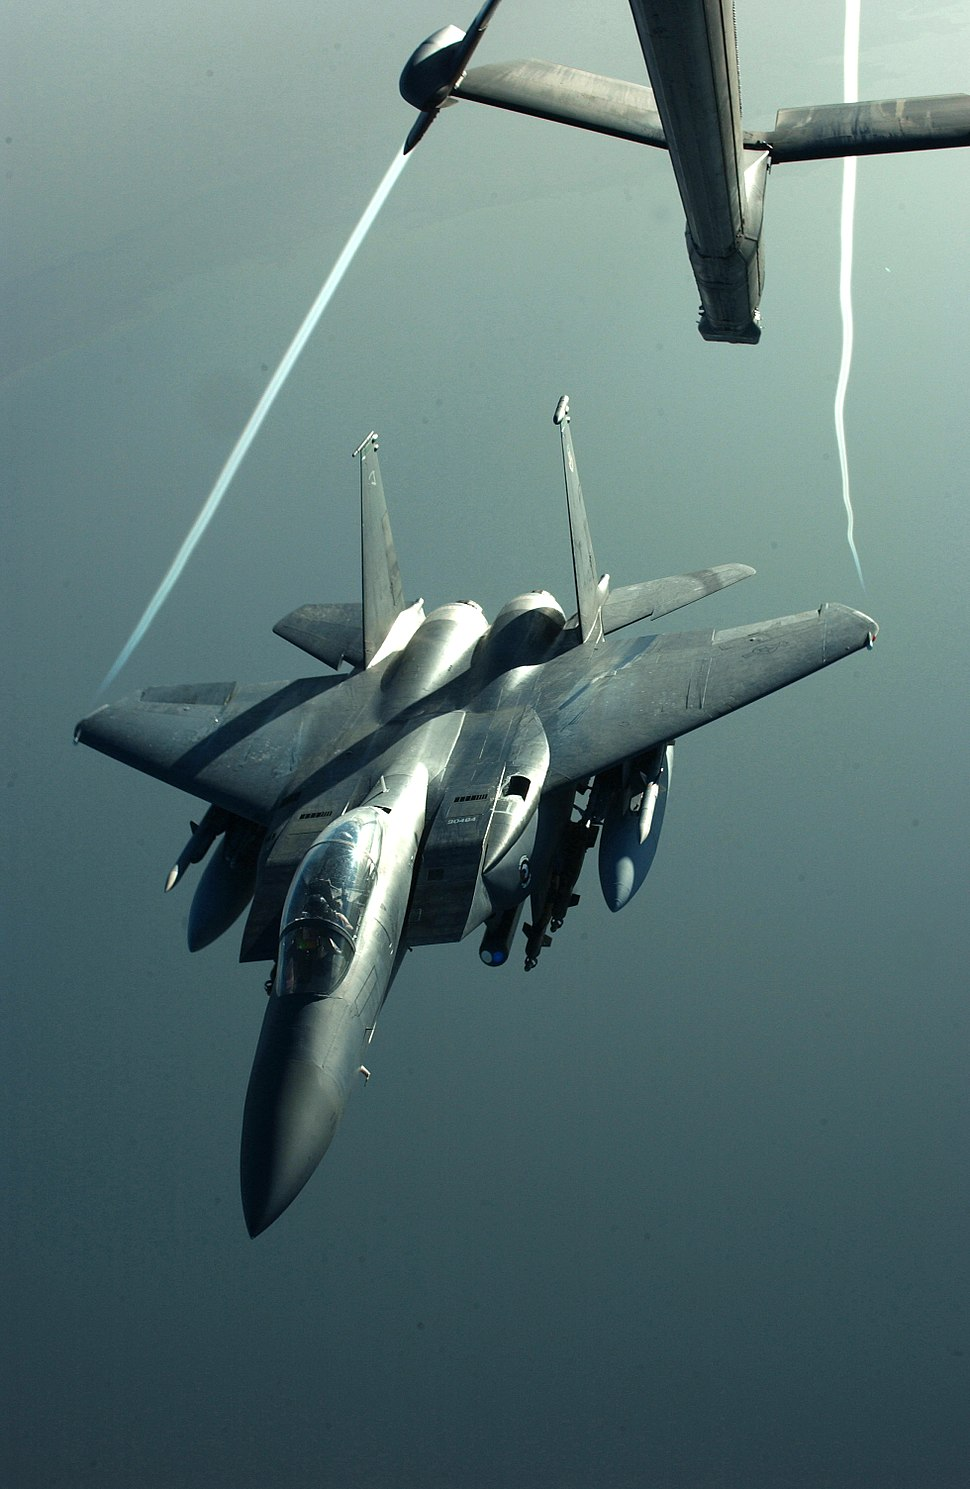 F-15 wingtip vortices